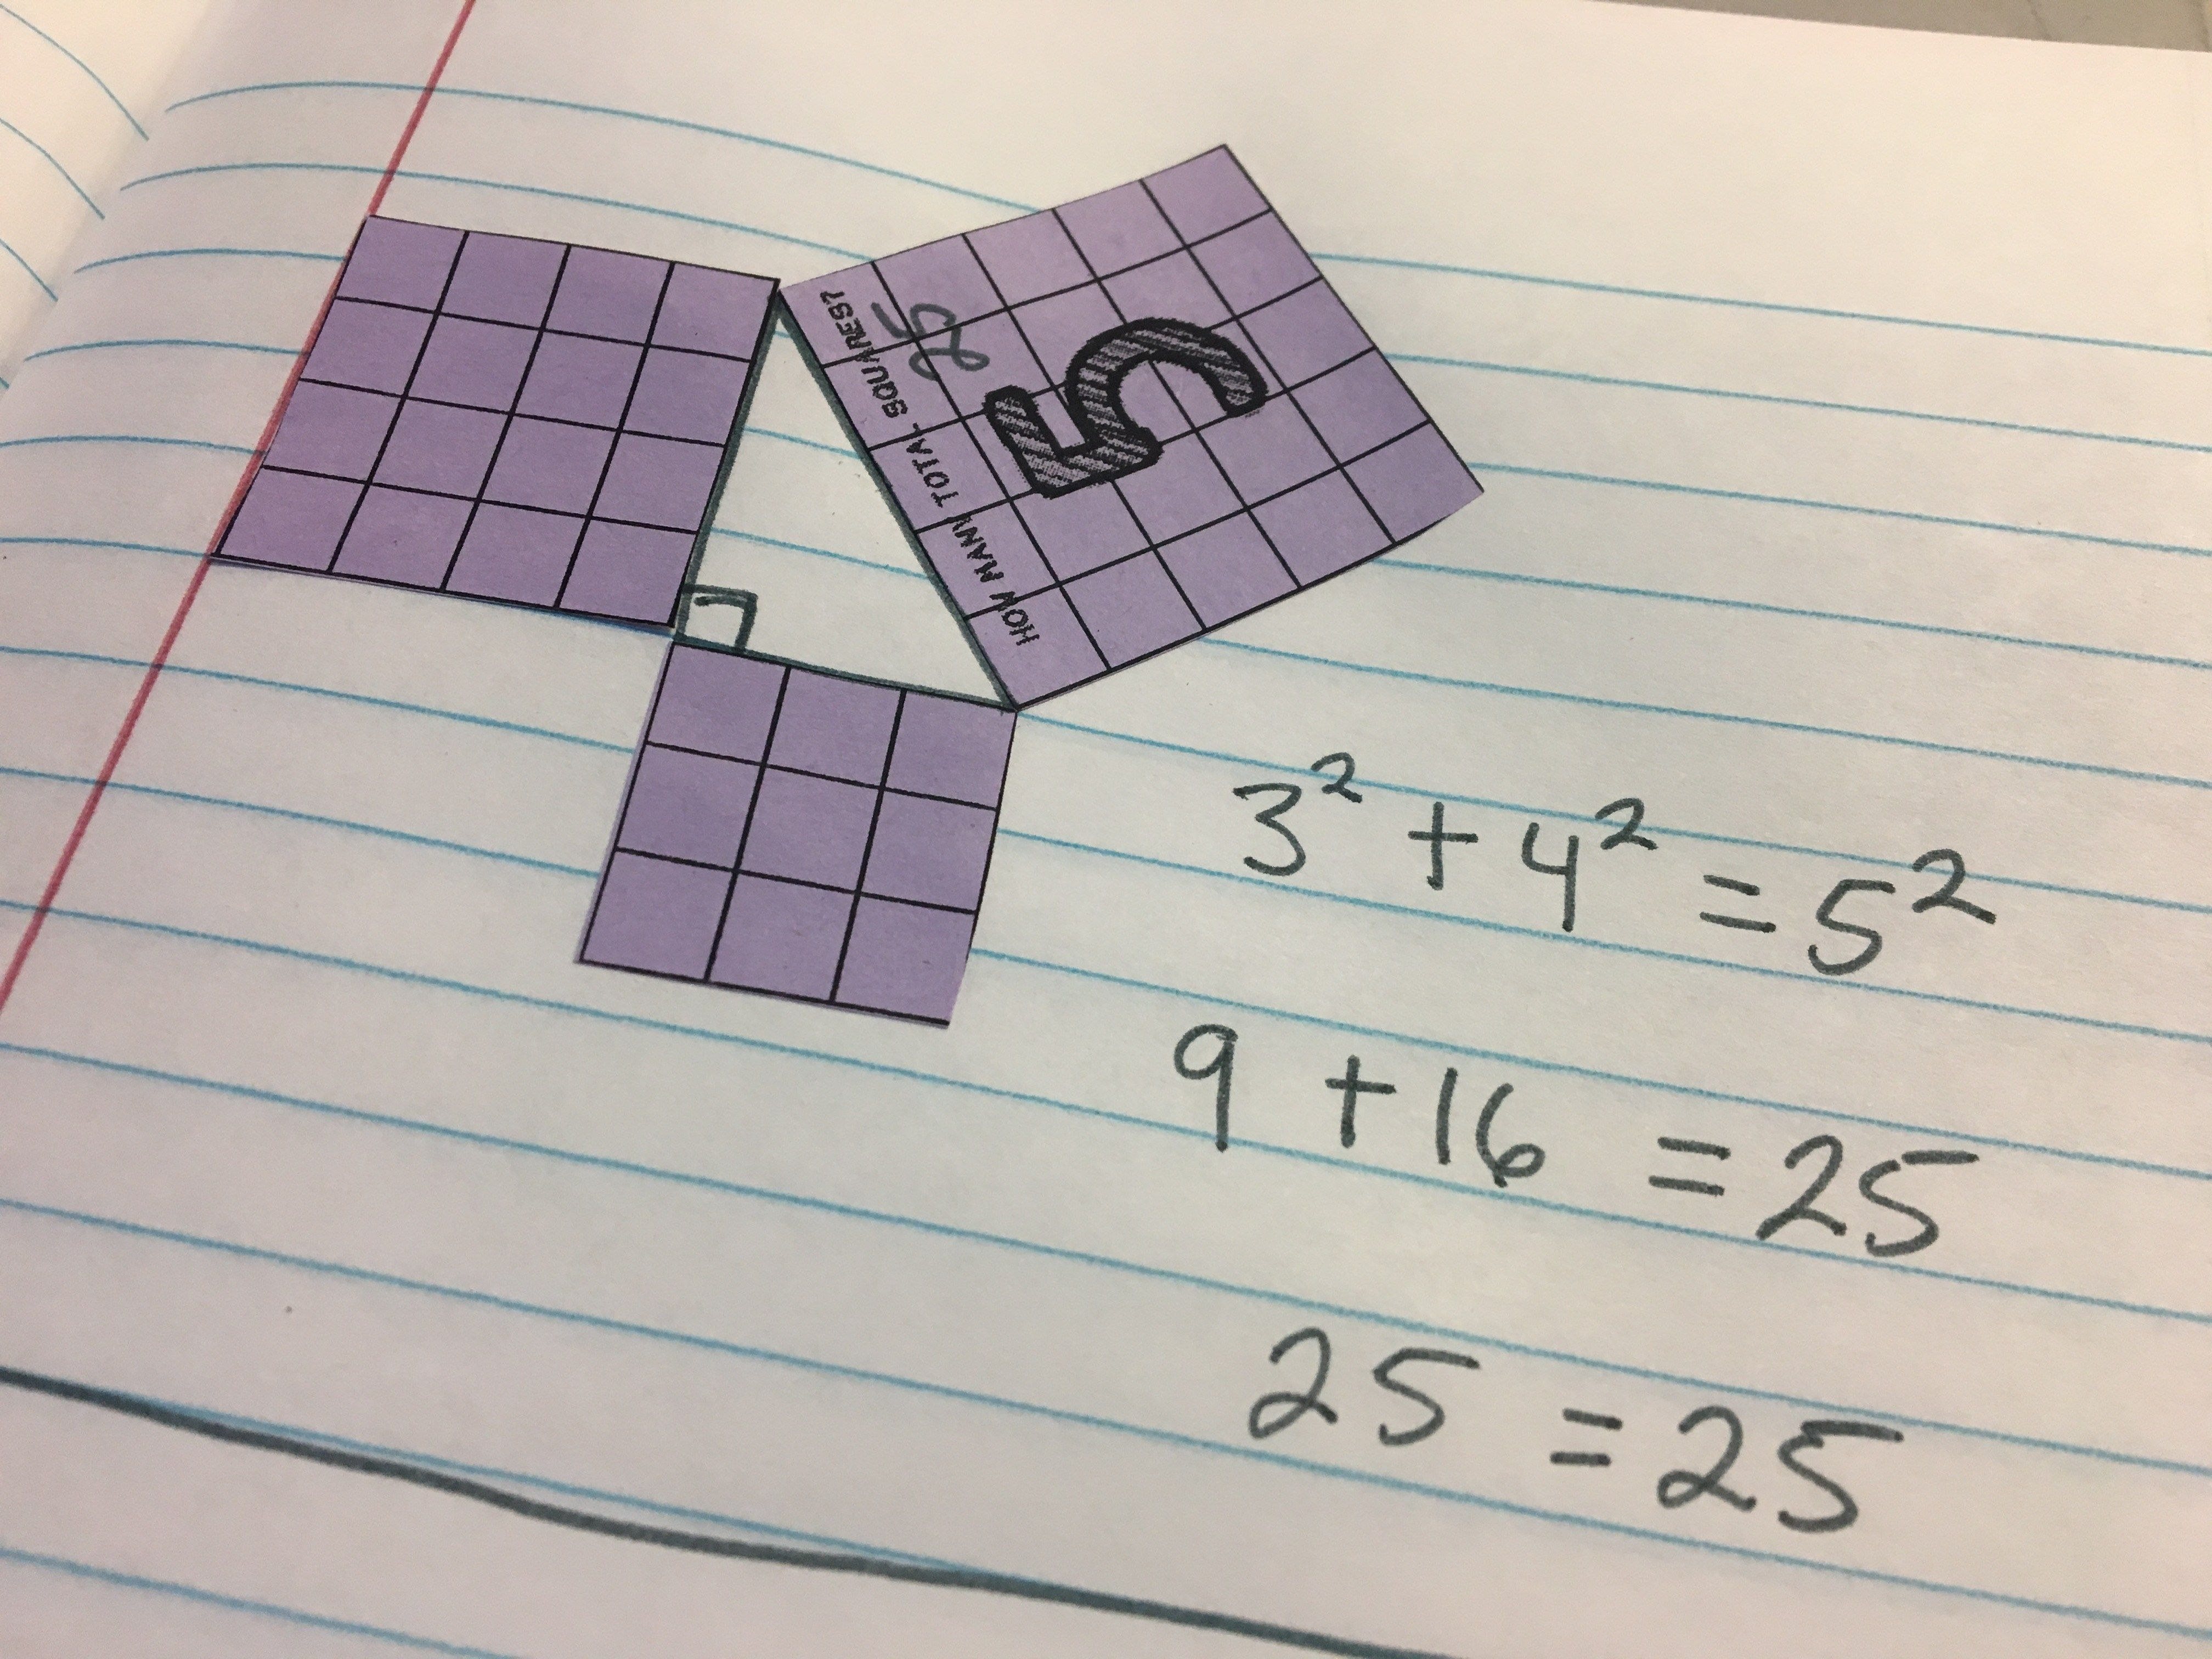 Fresh Ideas - Teaching the Pythagorean Theorem Proof through Discovery